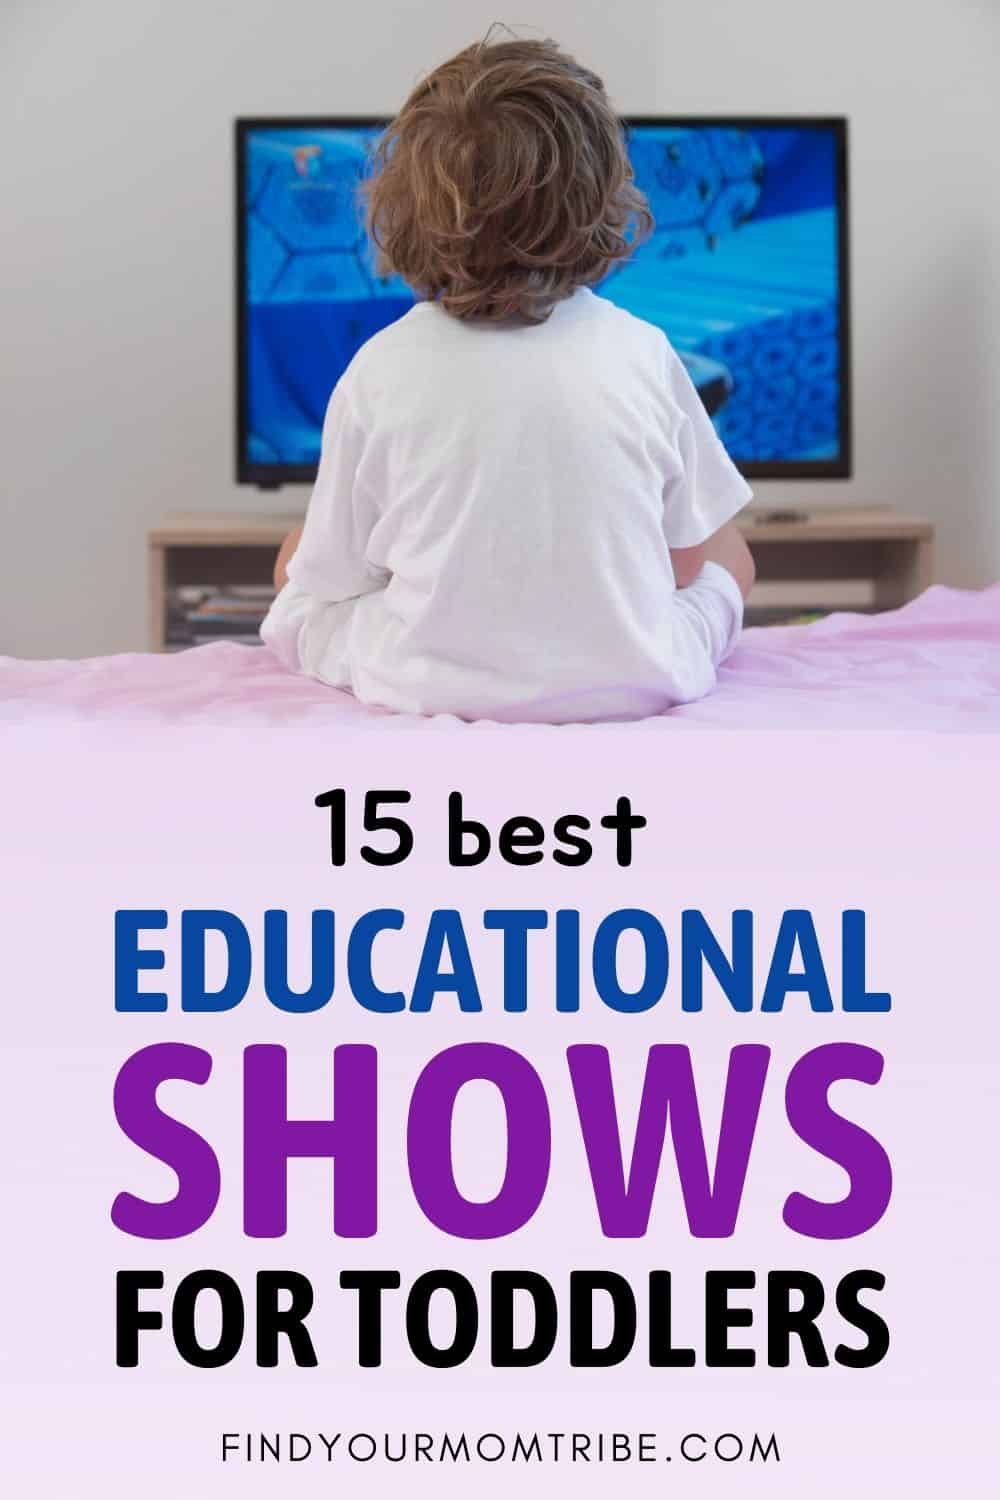 15 Best Educational Shows For Toddlers